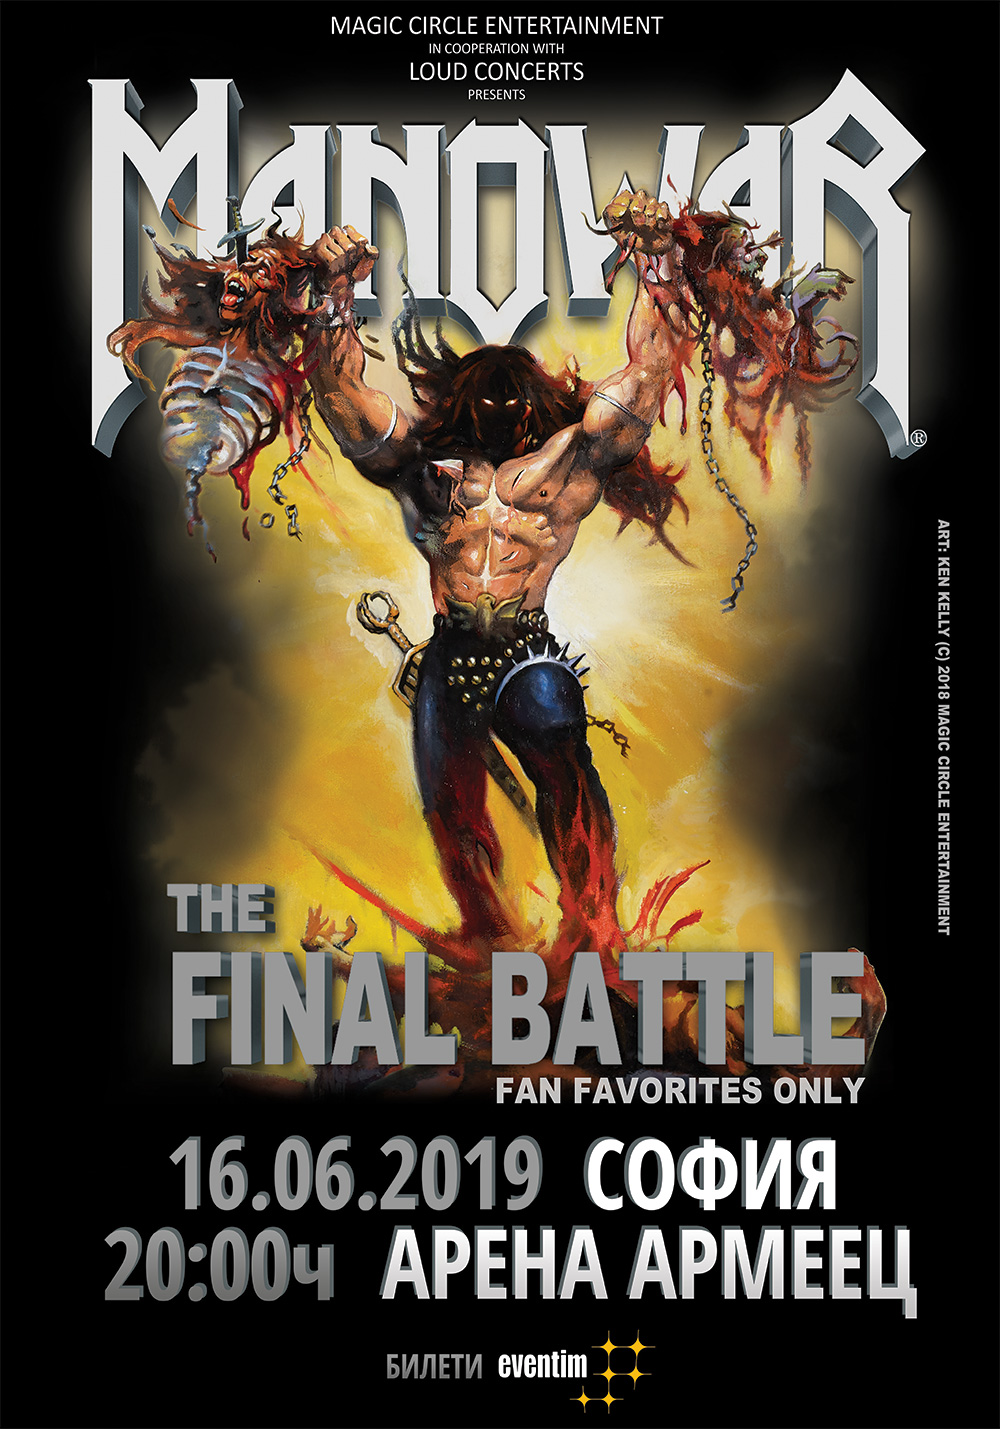 MANOWAR live in Sofia